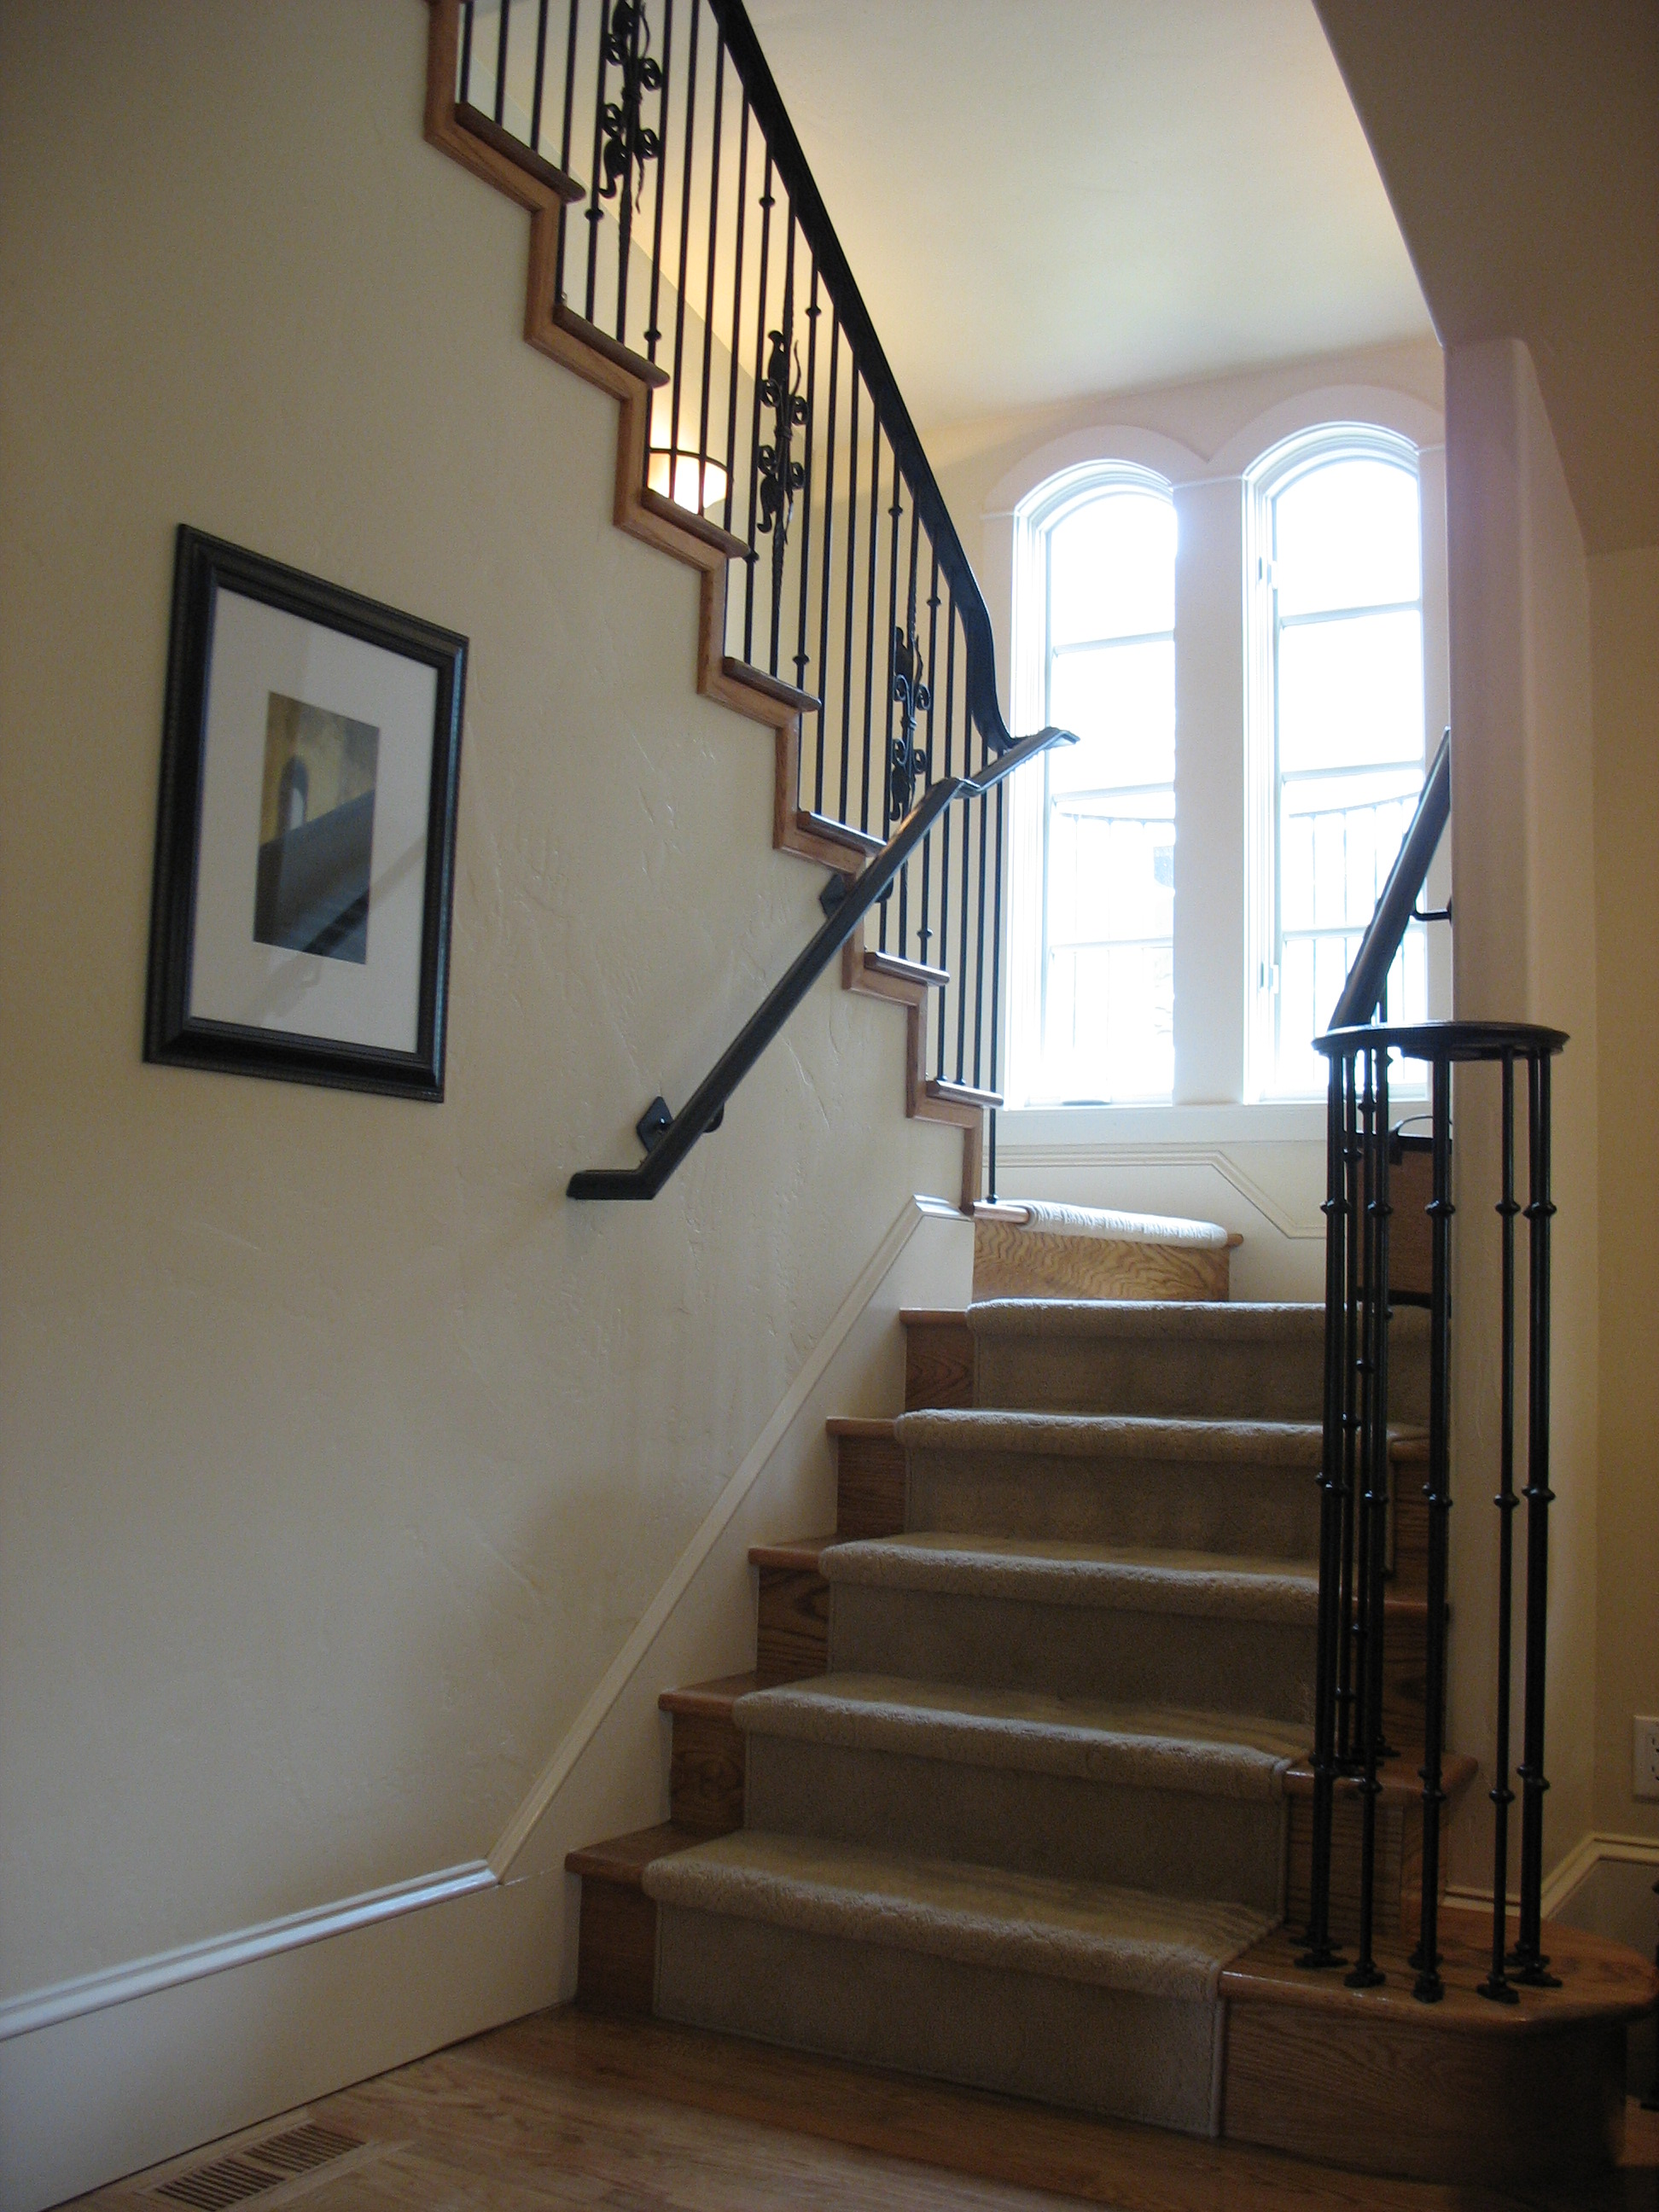 Looking up wrought iron and wood staircase